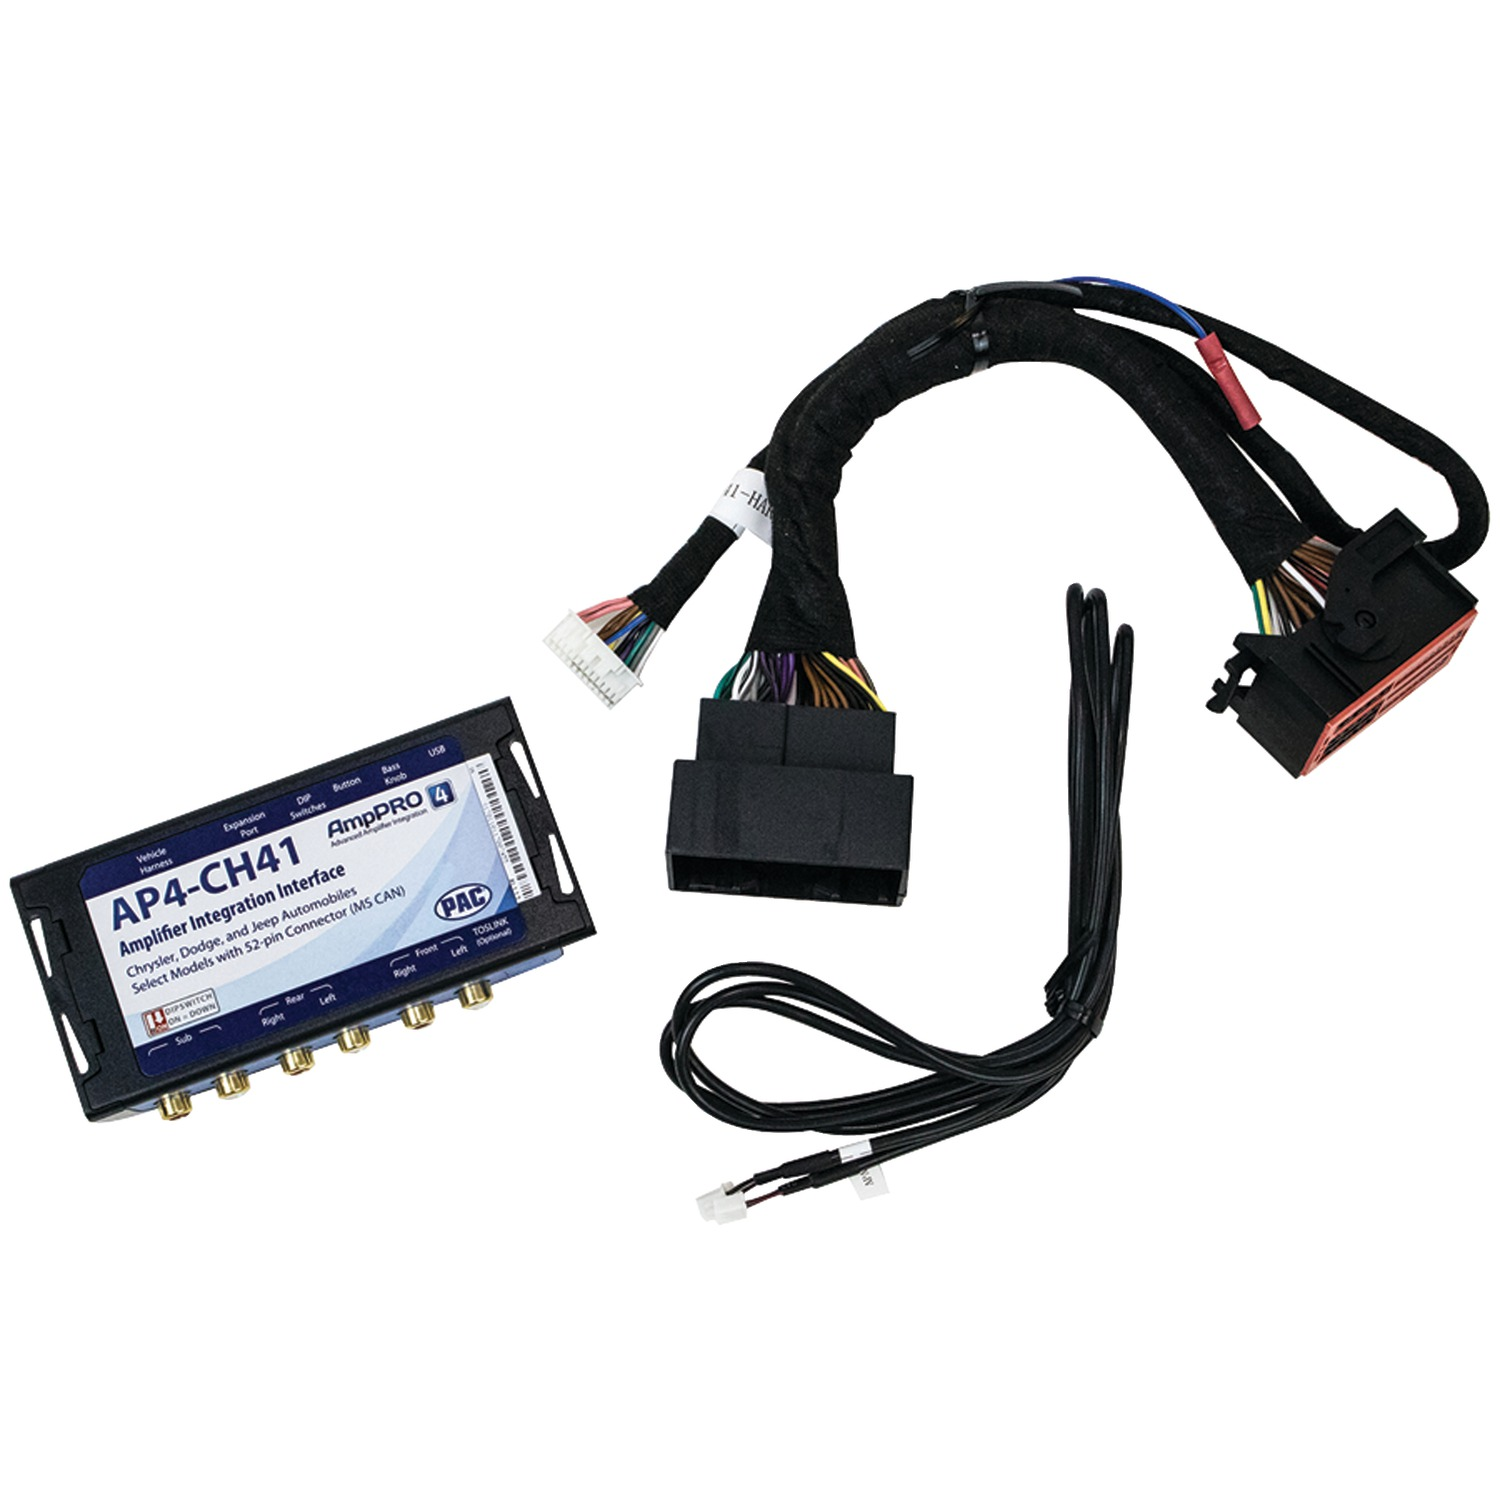 PAC AP4-CH41 | AmpPRO Interface (For Chrysler(R), Dodge(R), Jeep(R on jeep engine harness, jeep tach, jeep wiring connectors, jeep key switch, jeep relay wiring, jeep gas sending unit, jeep knock sensor, jeep seat belt harness, jeep wiring diagram, jeep exhaust leak, jeep wire connectors, jeep electrical harness, jeep condensor, jeep carrier bearing, jeep vacuum advance, jeep sport emblem, jeep intake gasket, jeep exhaust gasket, jeep bracket, jeep visor clip,